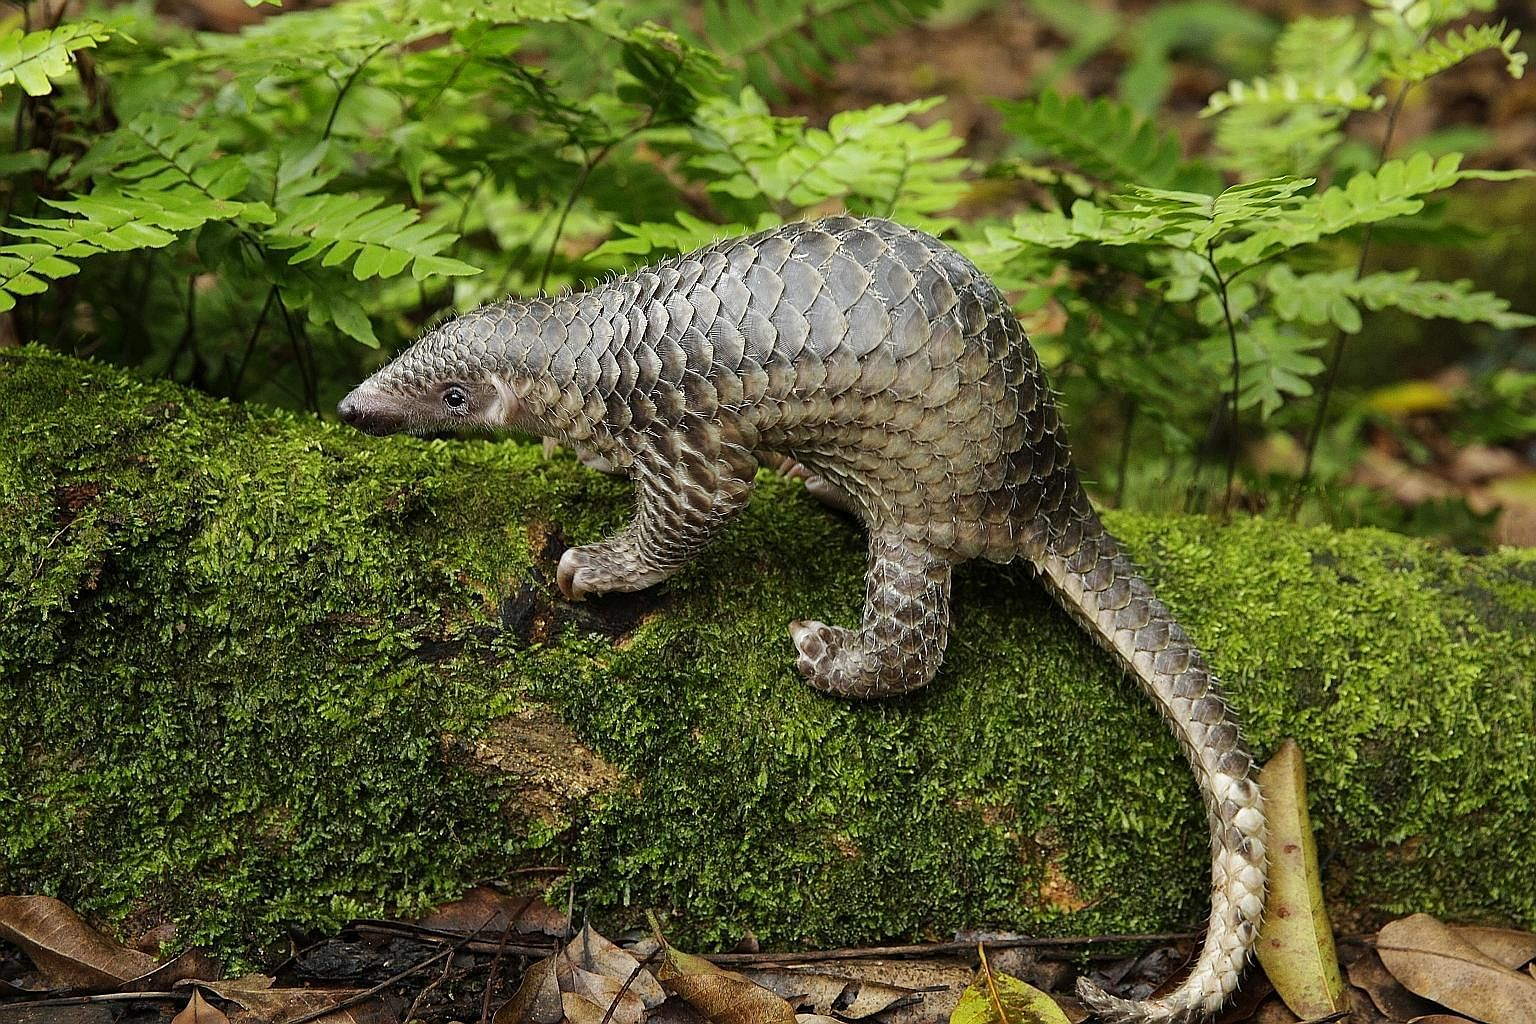 The Sunda pangolin, the only species of pangolin native to Singapore, is among critically endangered land and freshwater vertebrates in South-east Asia which are getting emergency conservation attention.